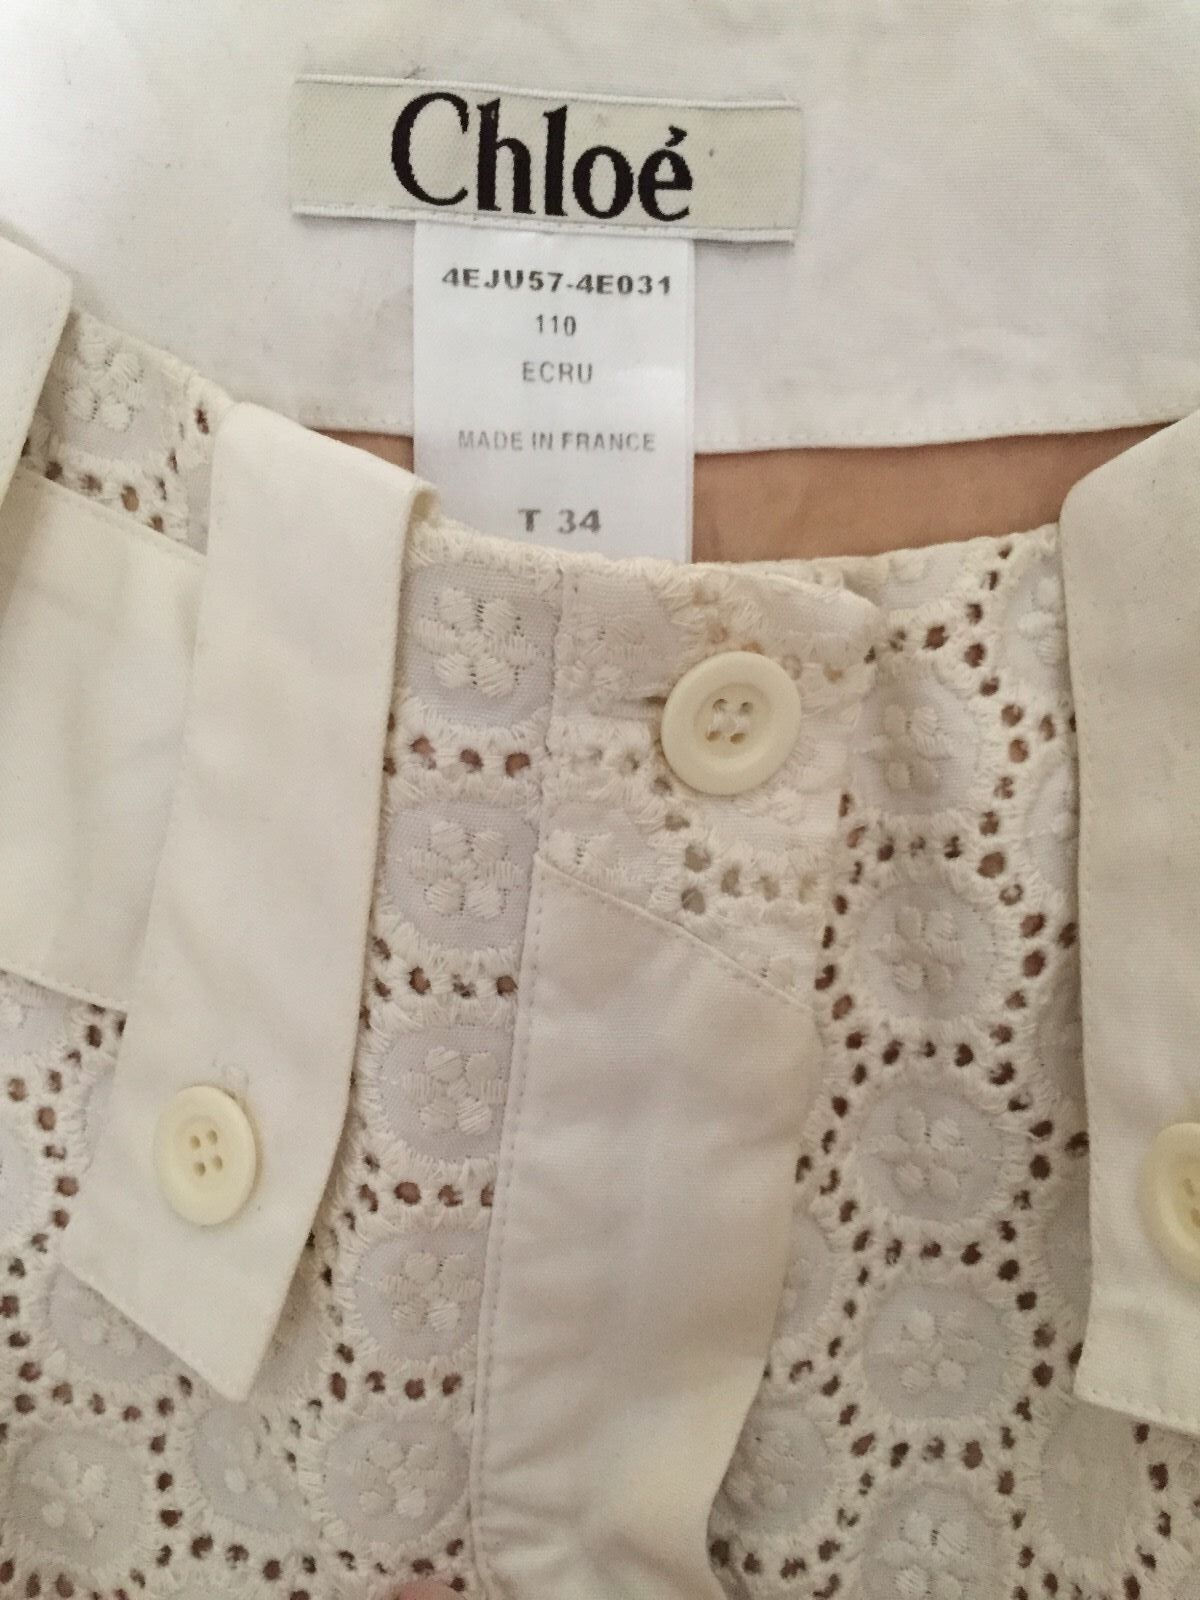 CHLOE WHITE CREAM NUDE EYELET SKIRT 34 GORGEOUS   ELEGANT   COLLECTORS CALLING